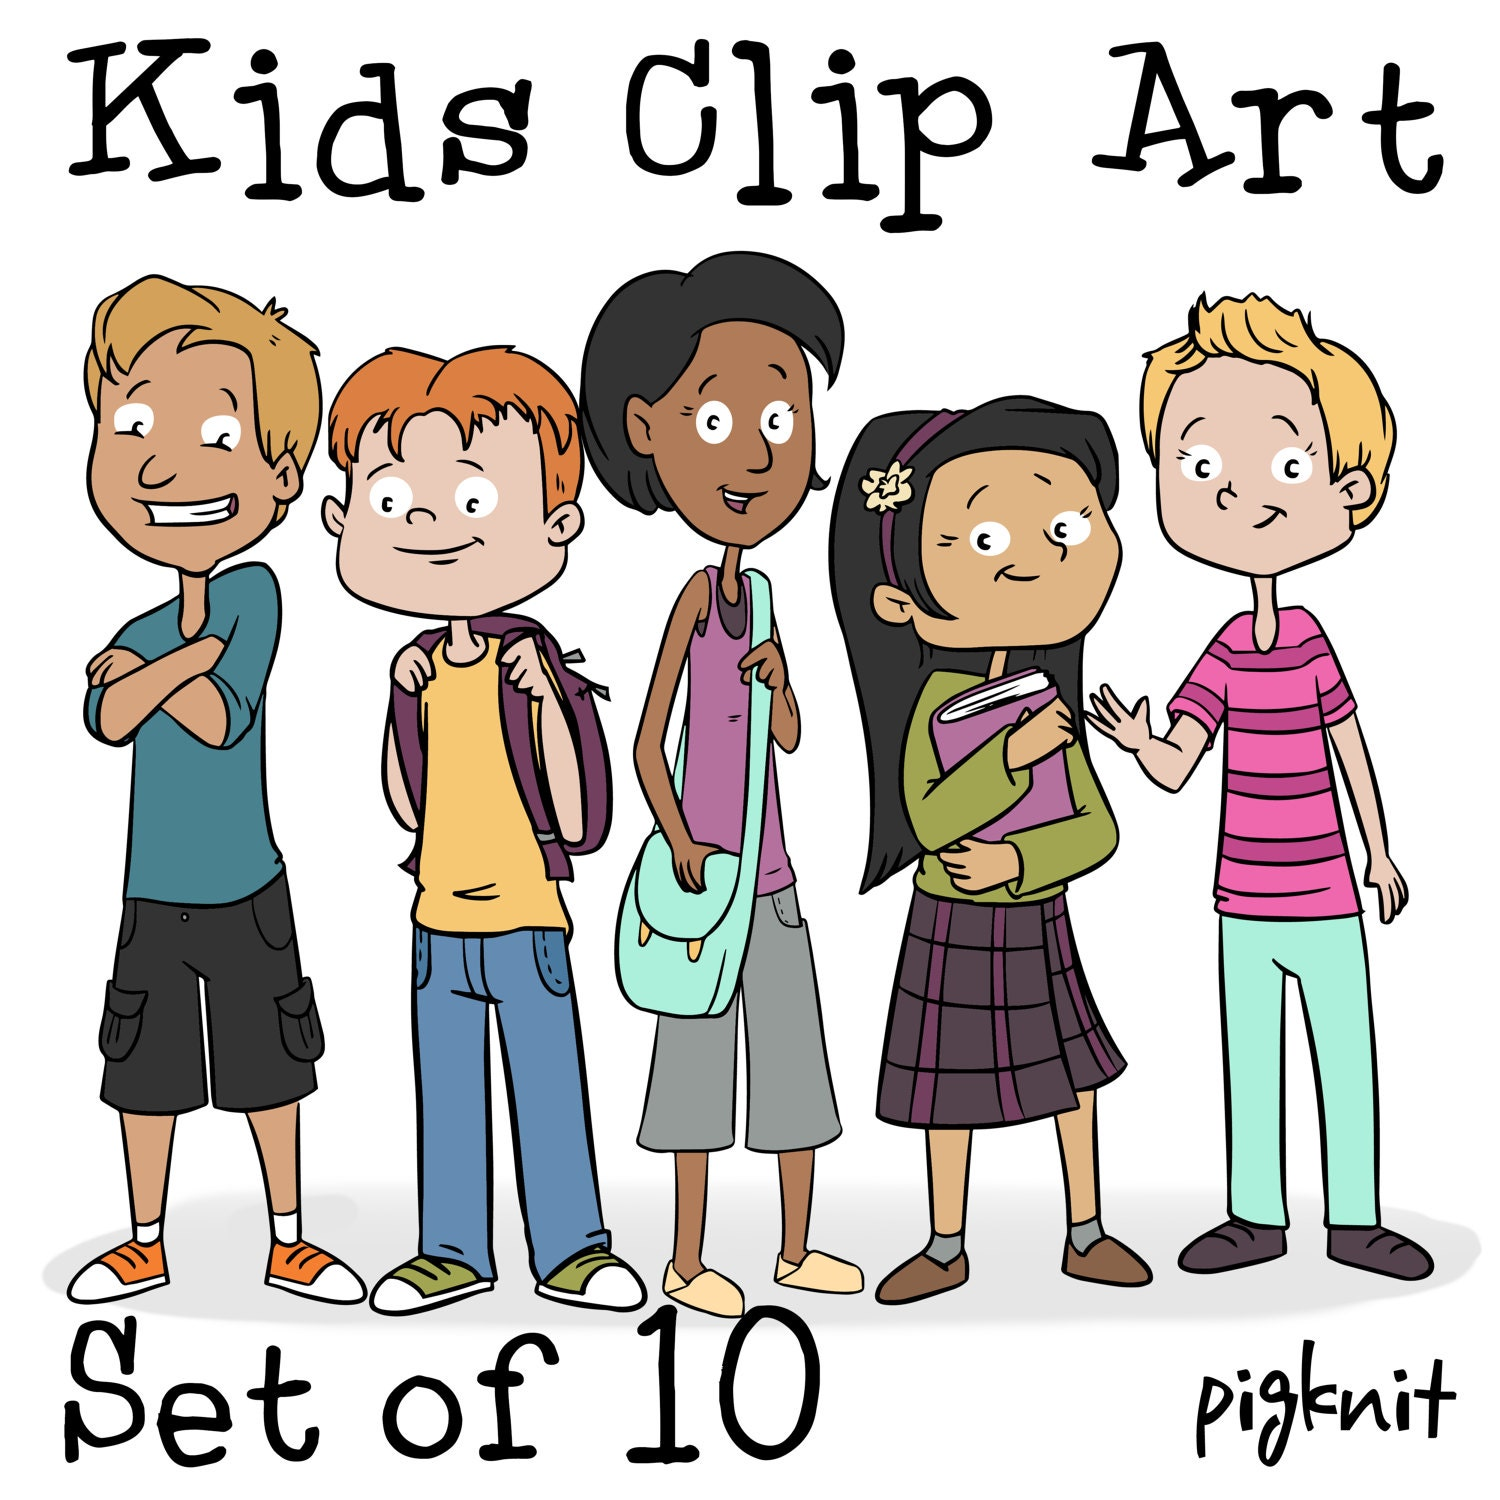 kids clip art png cartoon kid download middle school clip rh etsy com middle school clipart free middle school clipart images